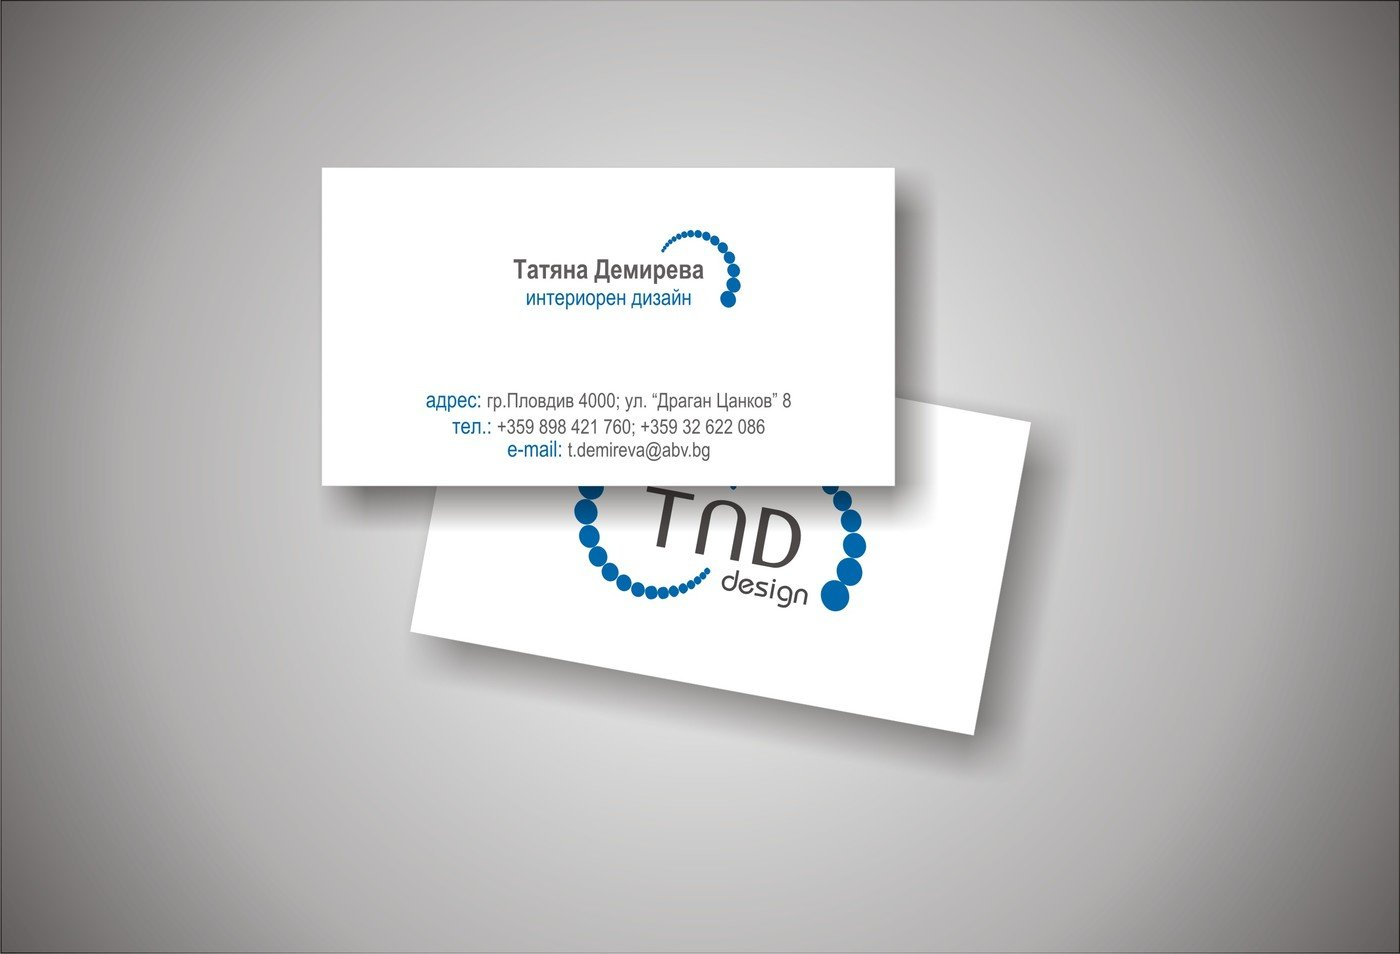 Print design by antonia marina at coroflot design of a business card for tnd design a studio for interior design two sided size 90 mm x 50 mm magicingreecefo Image collections